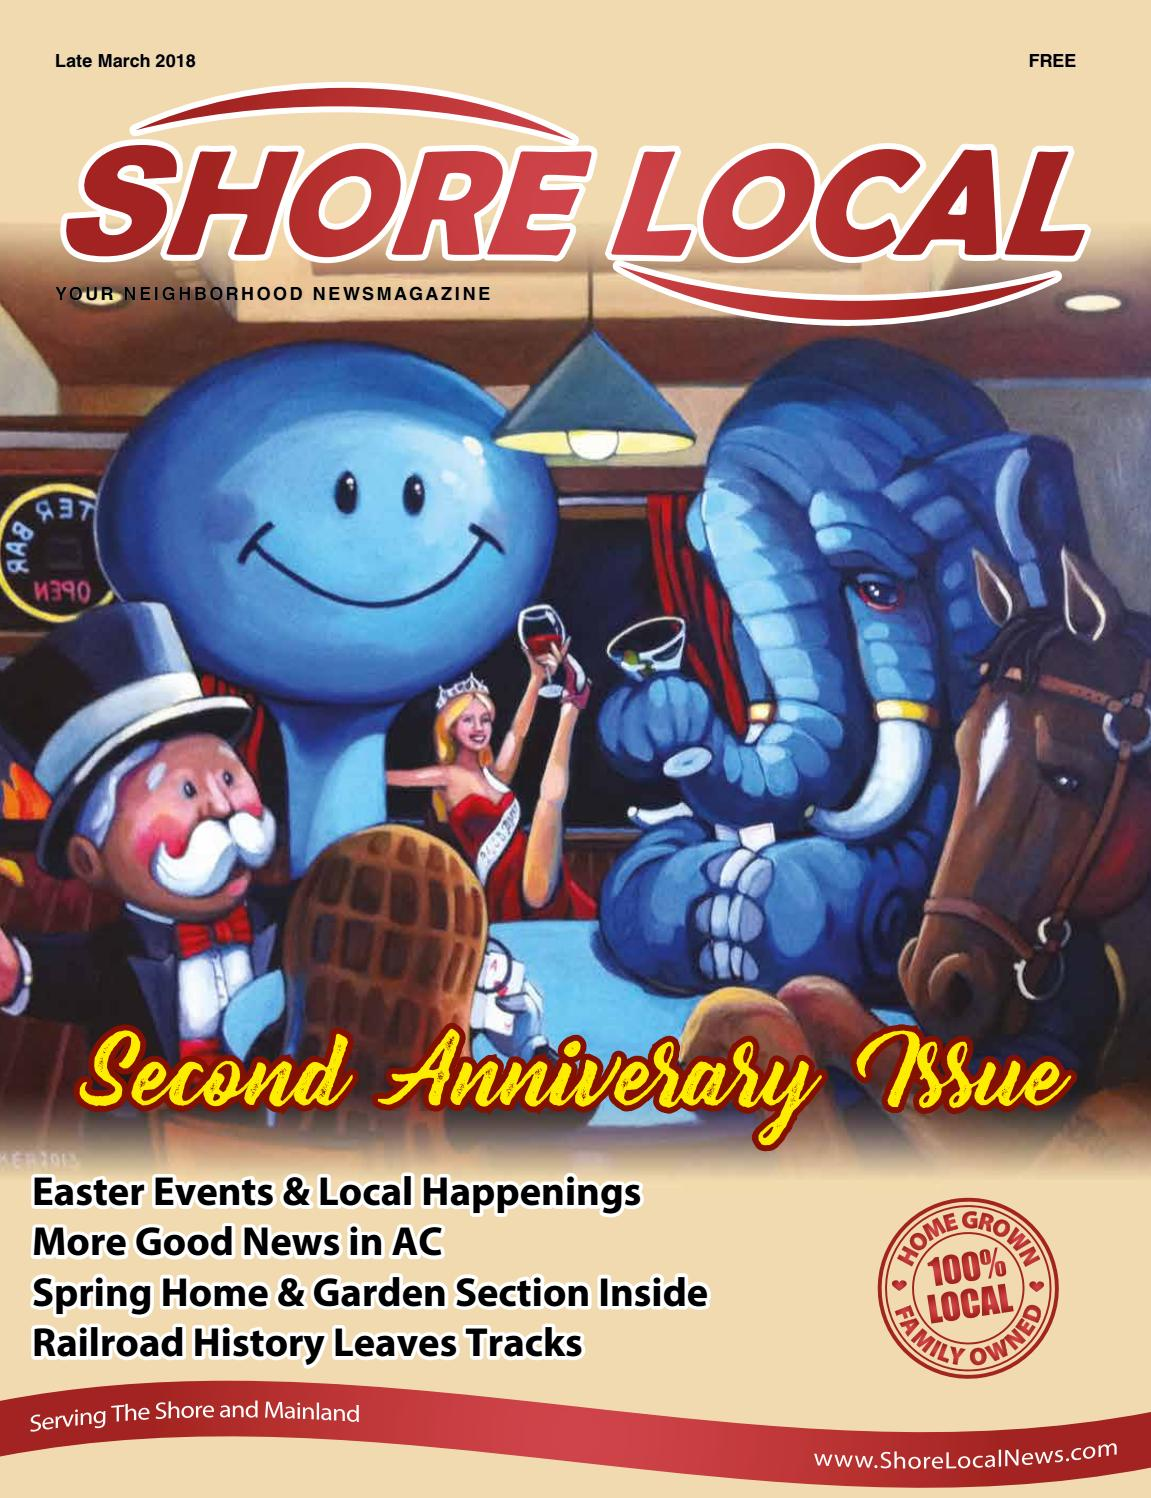 Shore local mainland march 22 march 28 2018 by mike kurov issuu fandeluxe Gallery